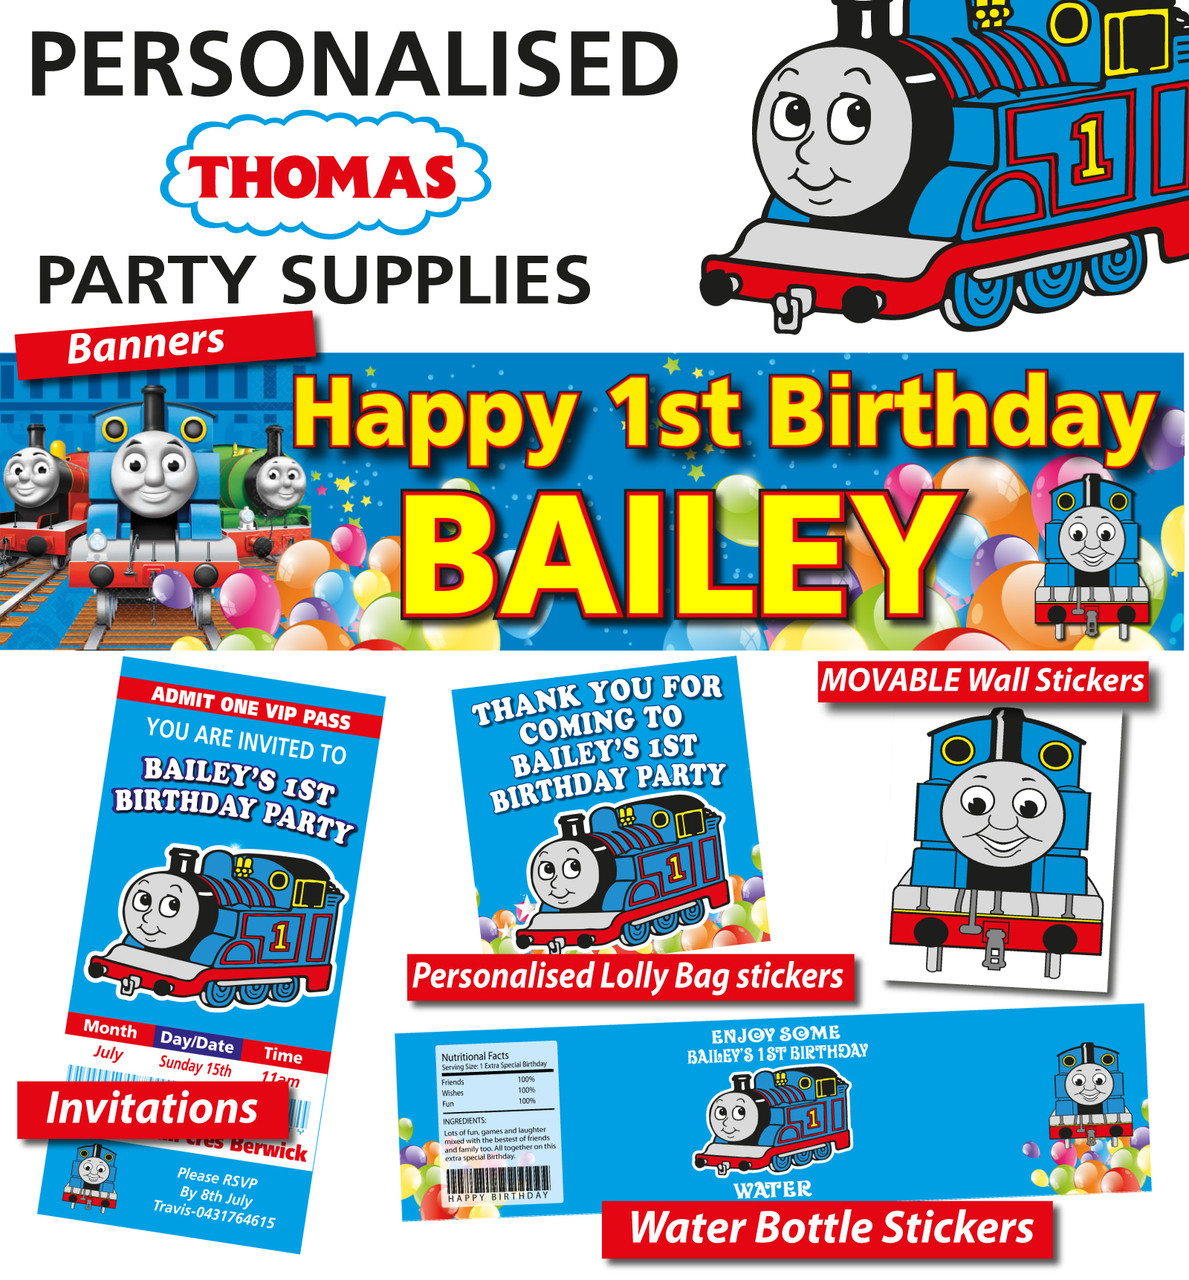 Personalised Thomas The Tank Engine Birthday Party Banner Decorations Loading Zoom